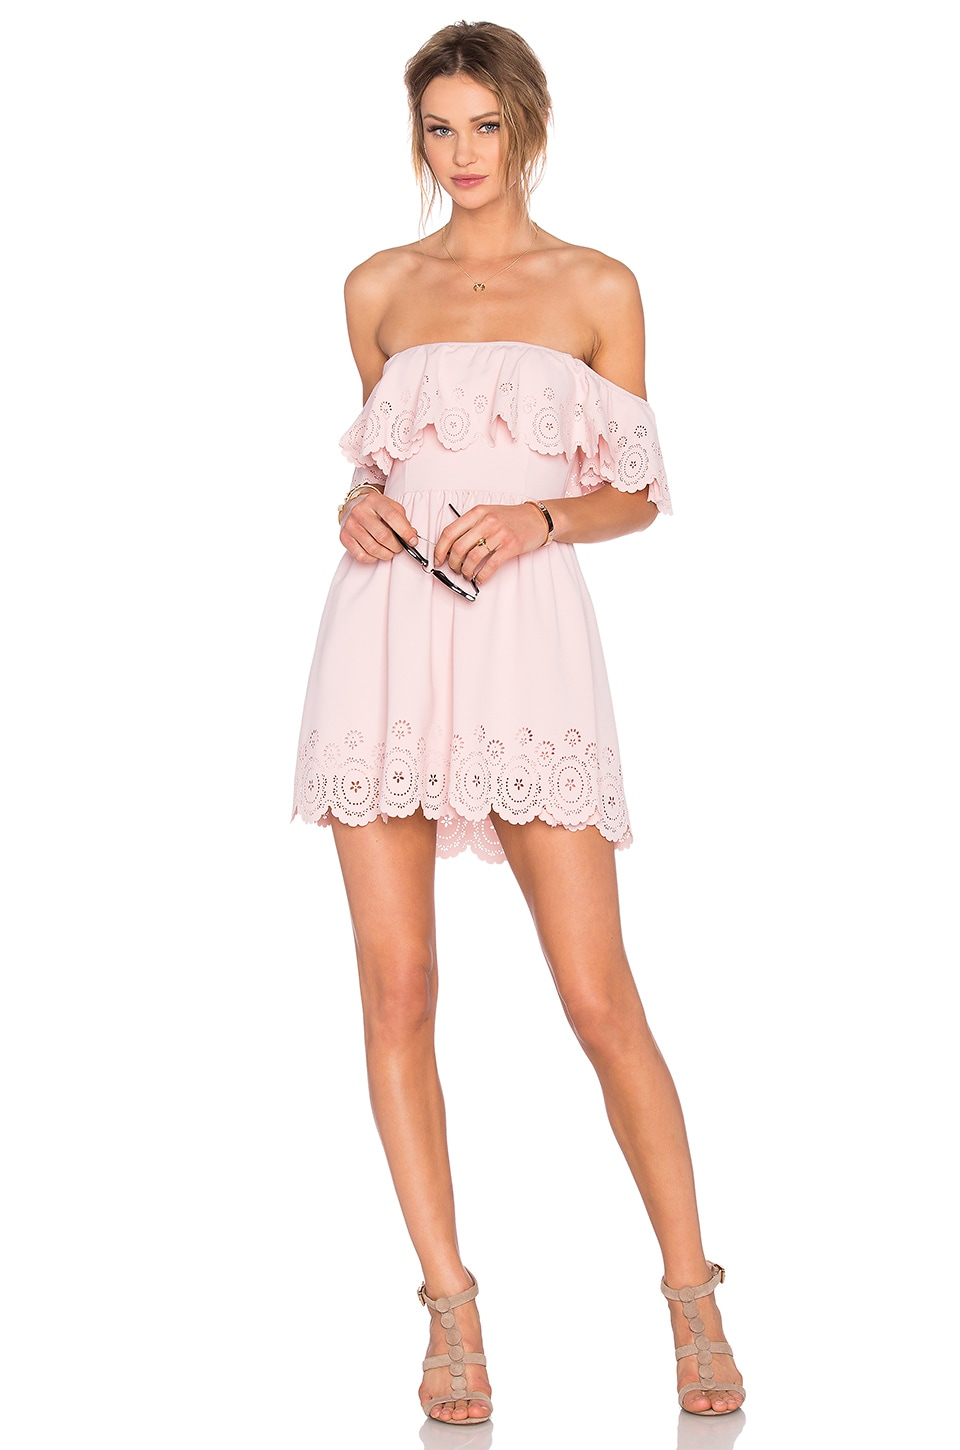 x REVOLVE Dream Vacay Dress by Lovers + Friends